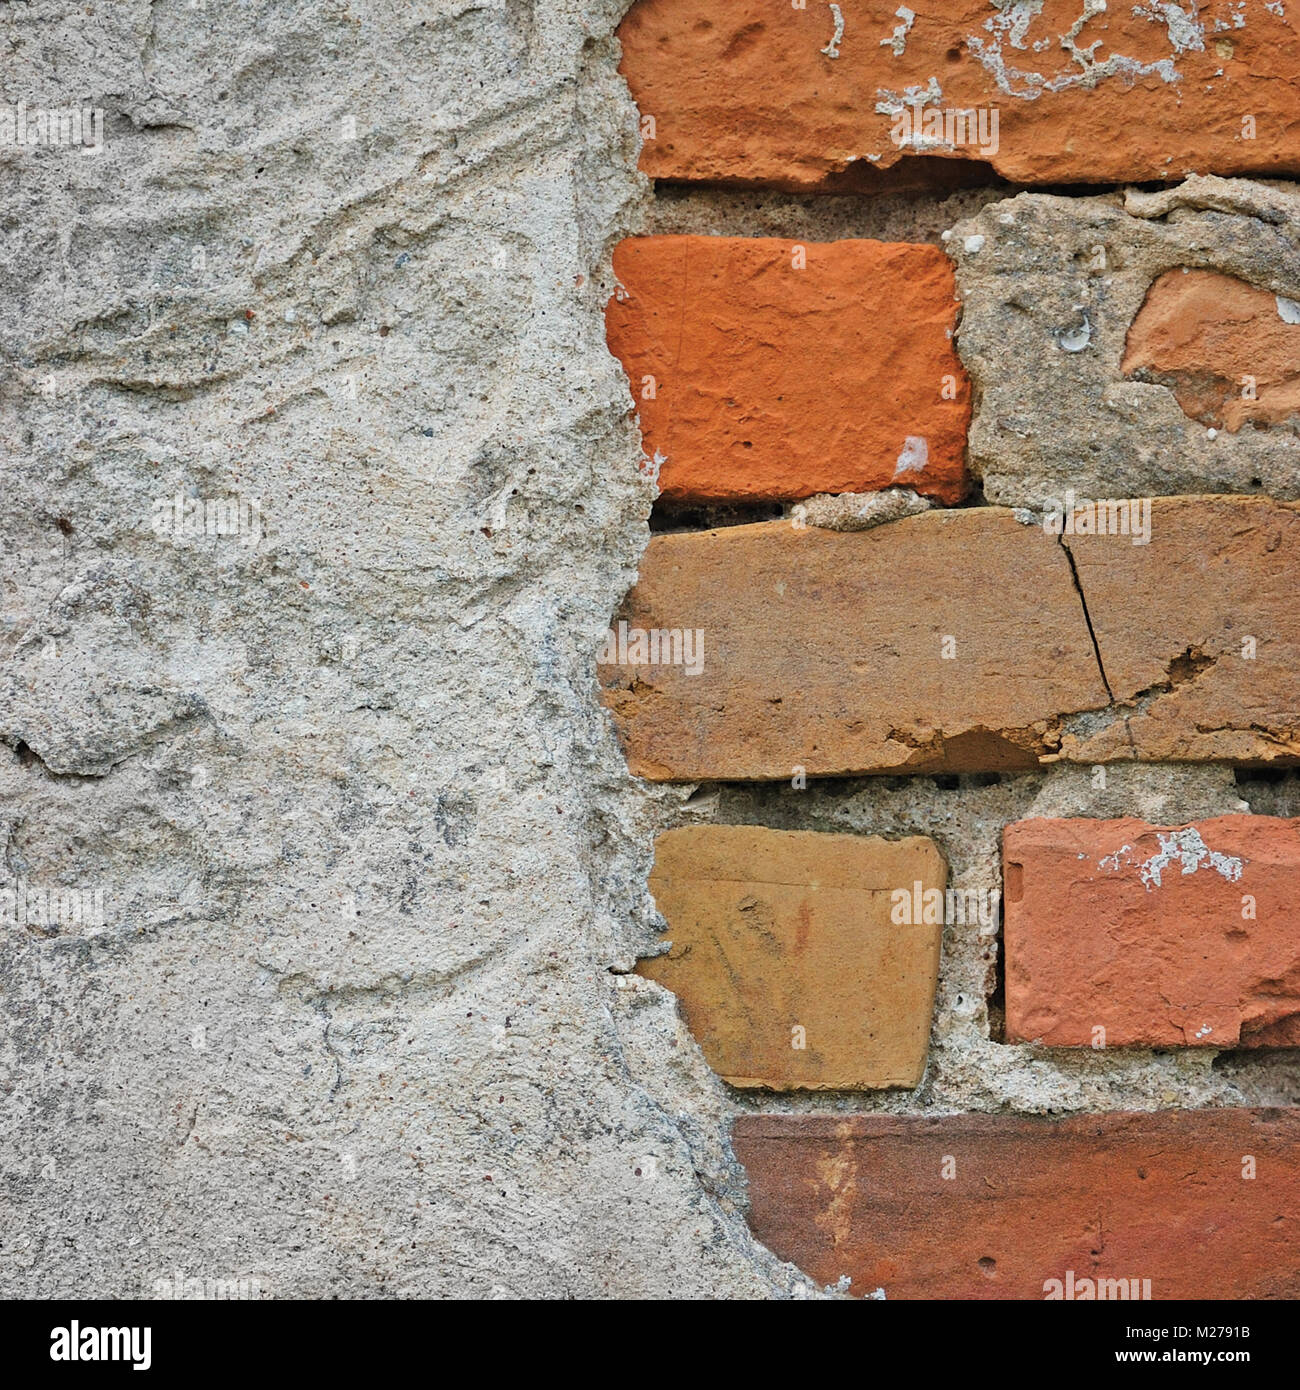 Cracked Mortar Stock Photos Cracked Mortar Stock Images Alamy